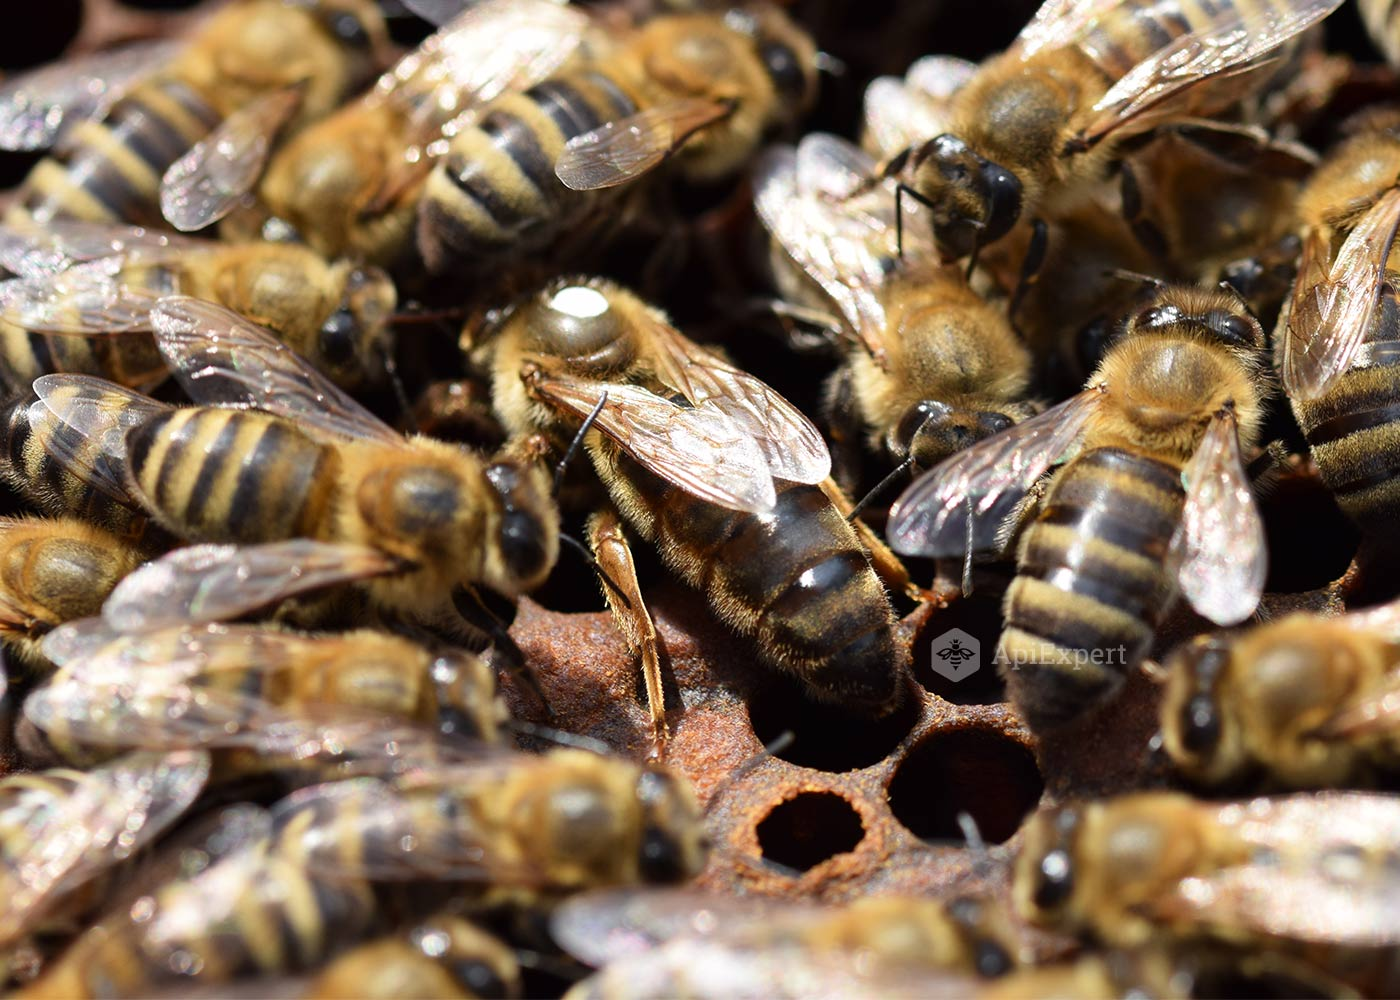 drones bee with Caucasian Queen Bees on Watch besides Hor additionally Paper Wasp moreover The First Drone as well Insects Types Of Wasps Wasp Sting Treatment.